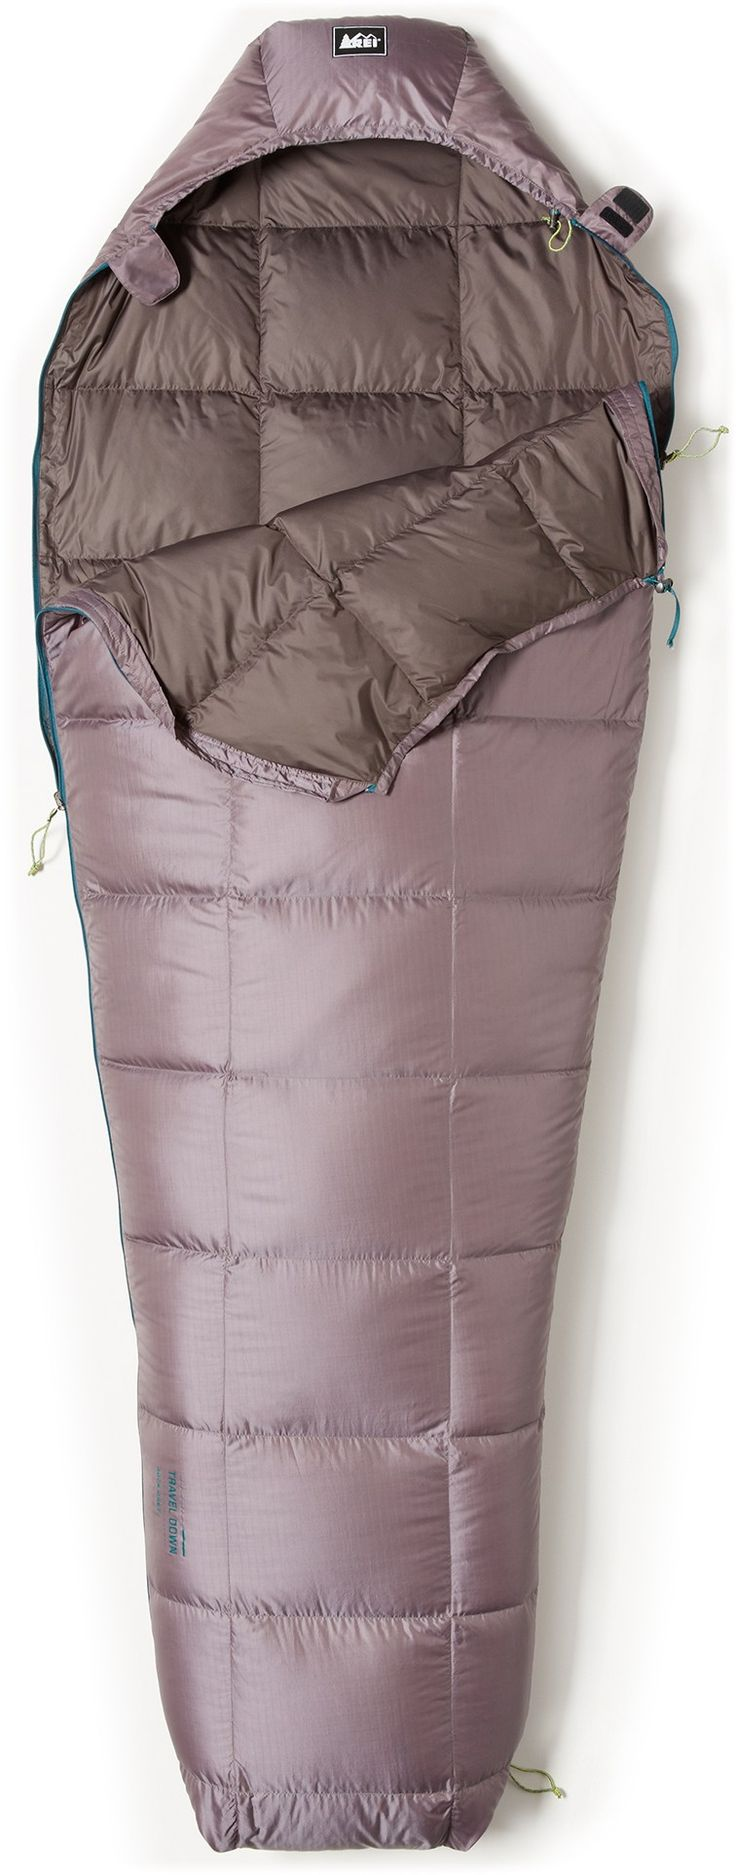 REI Travel Down Sleeping Bag [for anyone else looking since the Halo is out of stock]